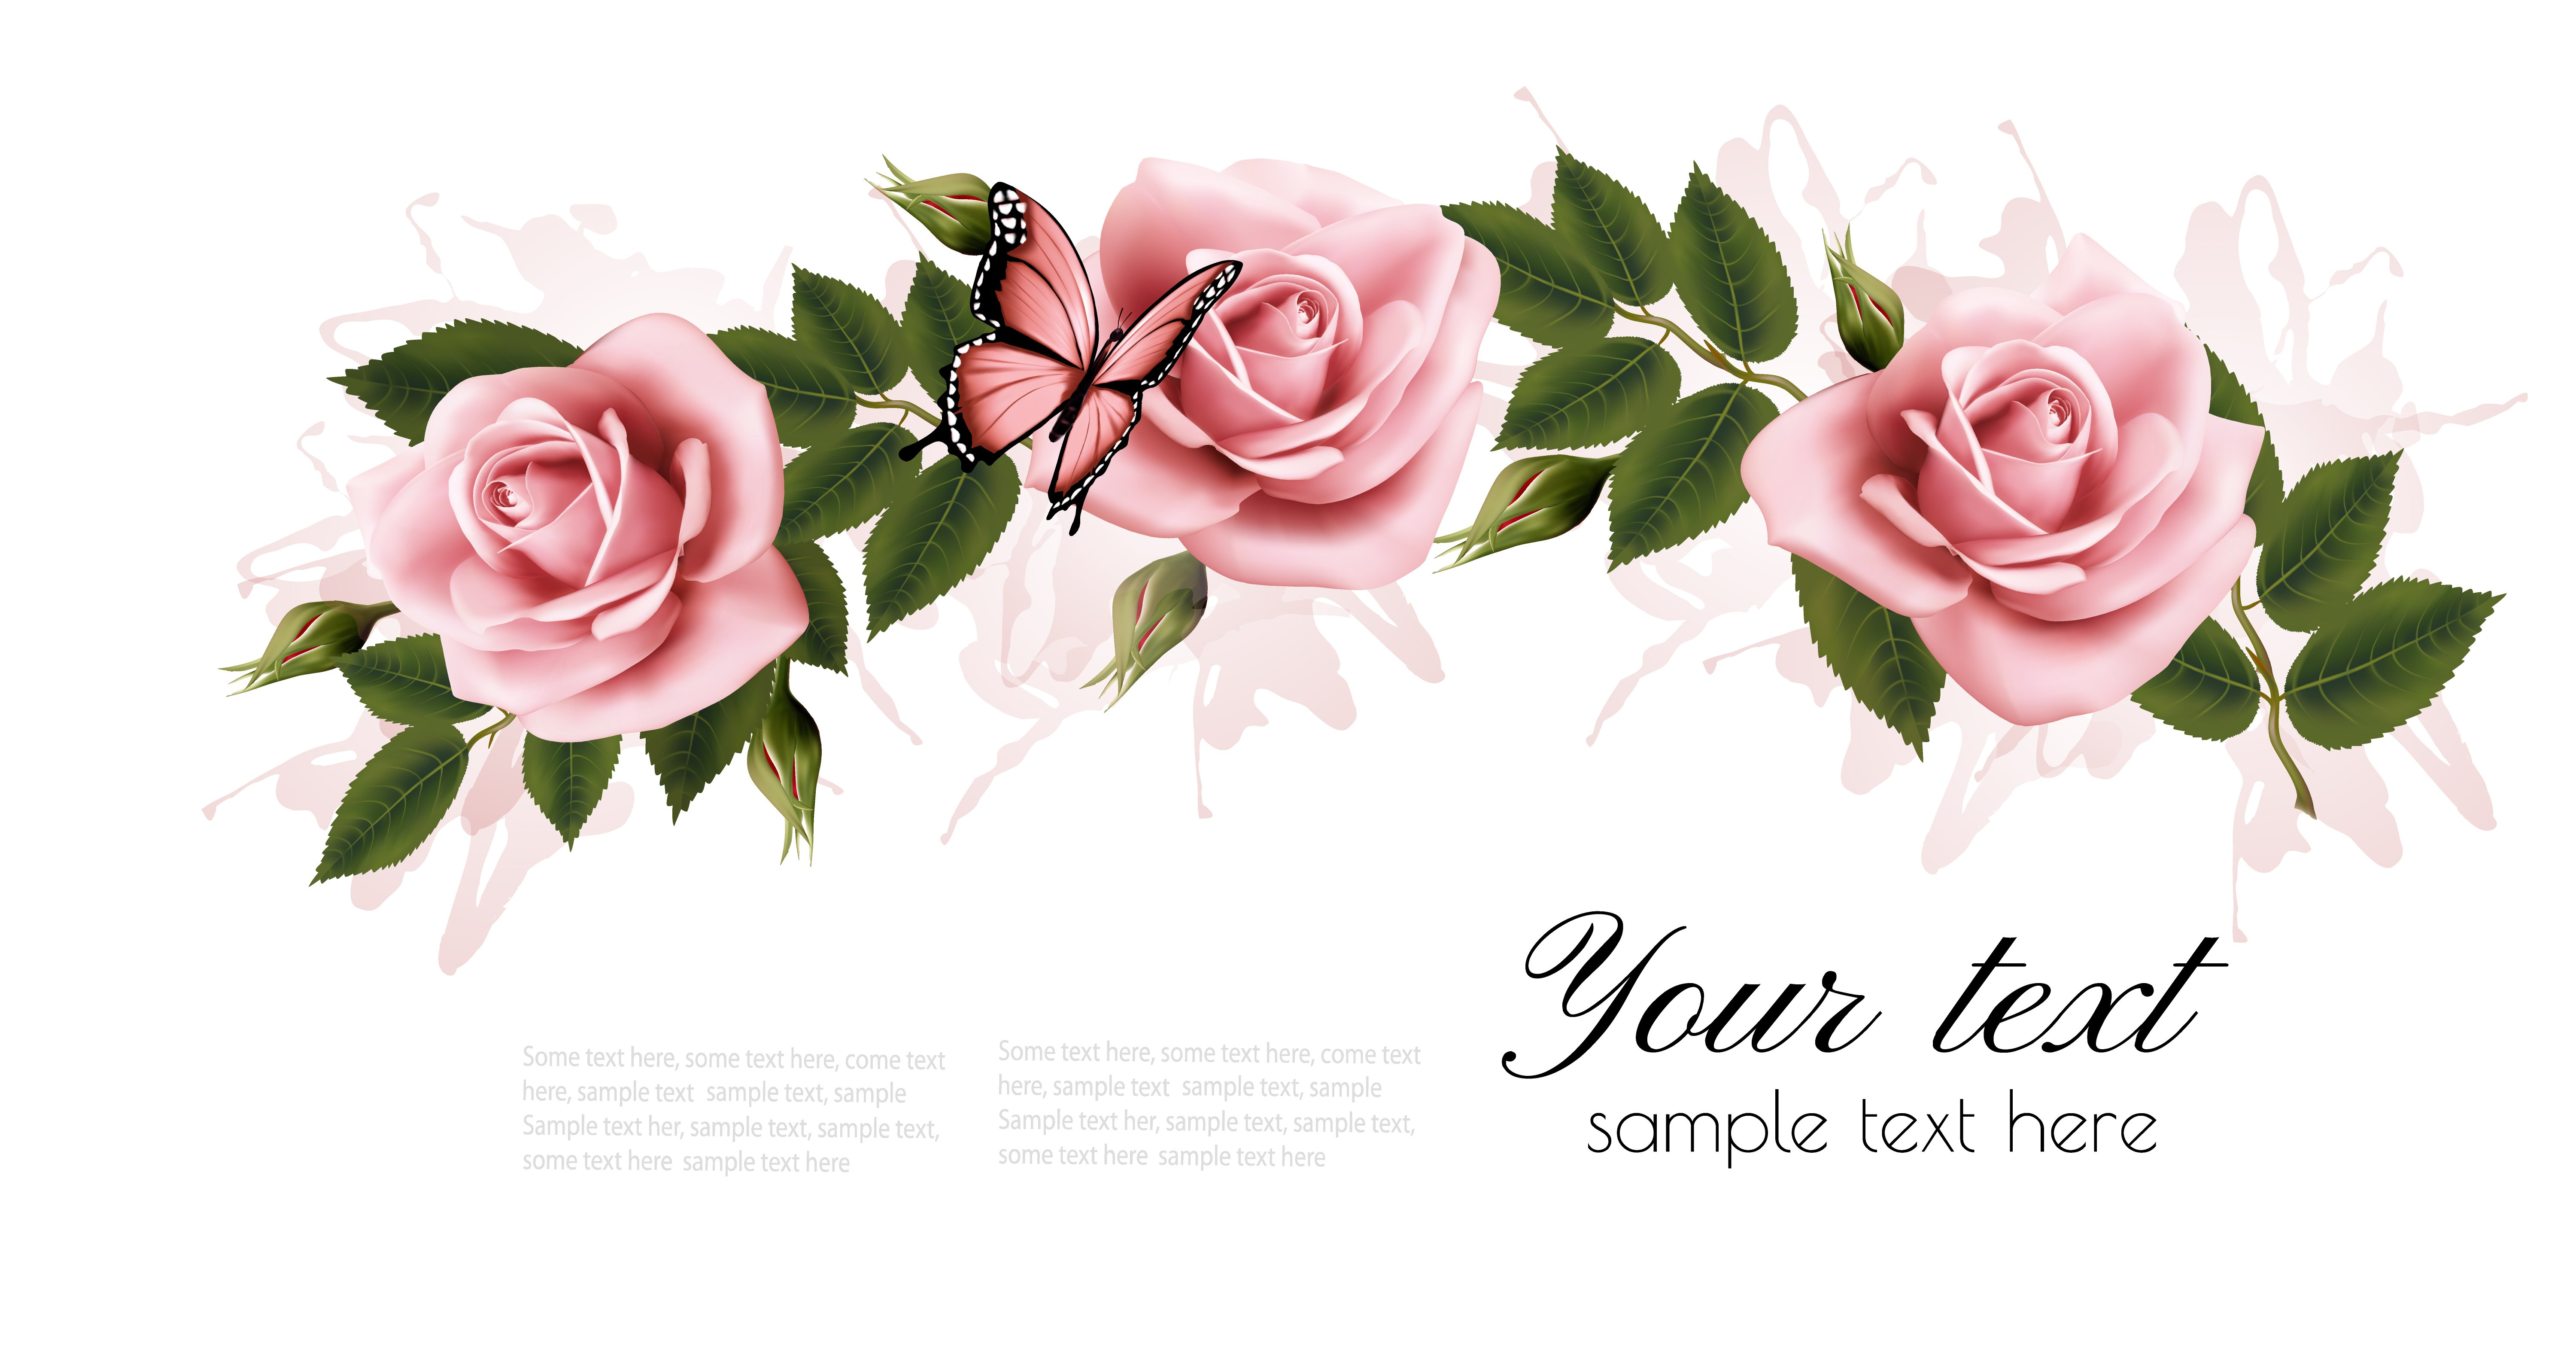 Flower Frame With Beauty Pink Roses Illustrations Creative Market